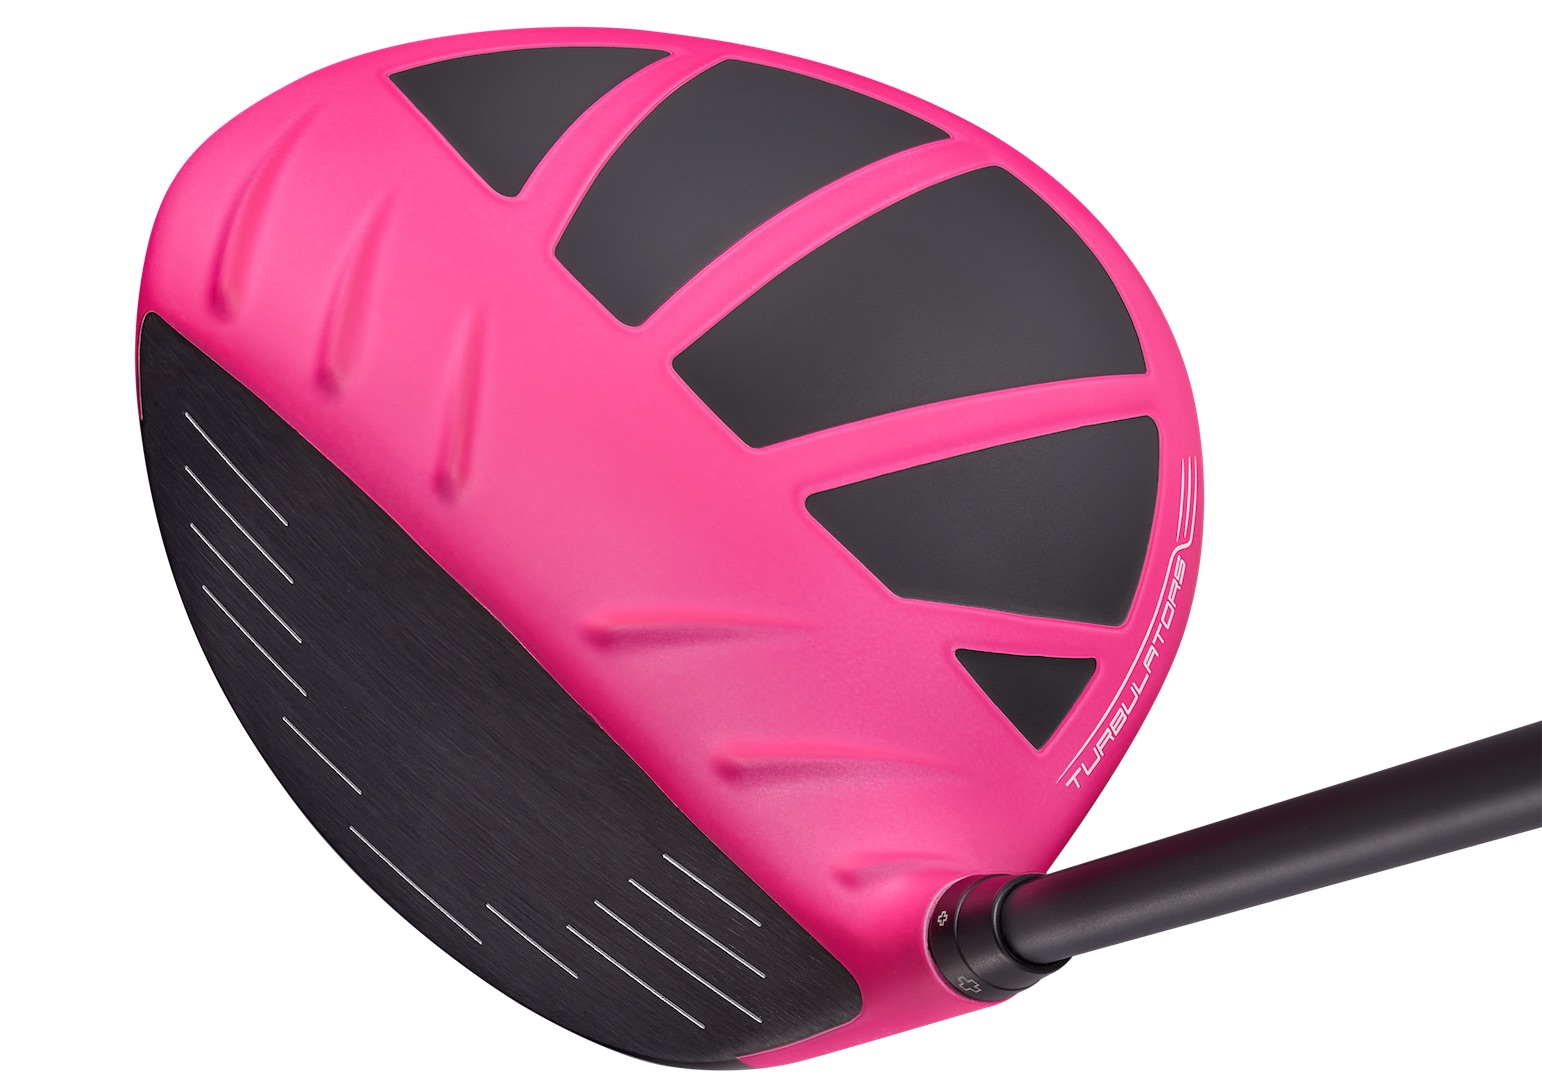 Ping's New Pink G Driver